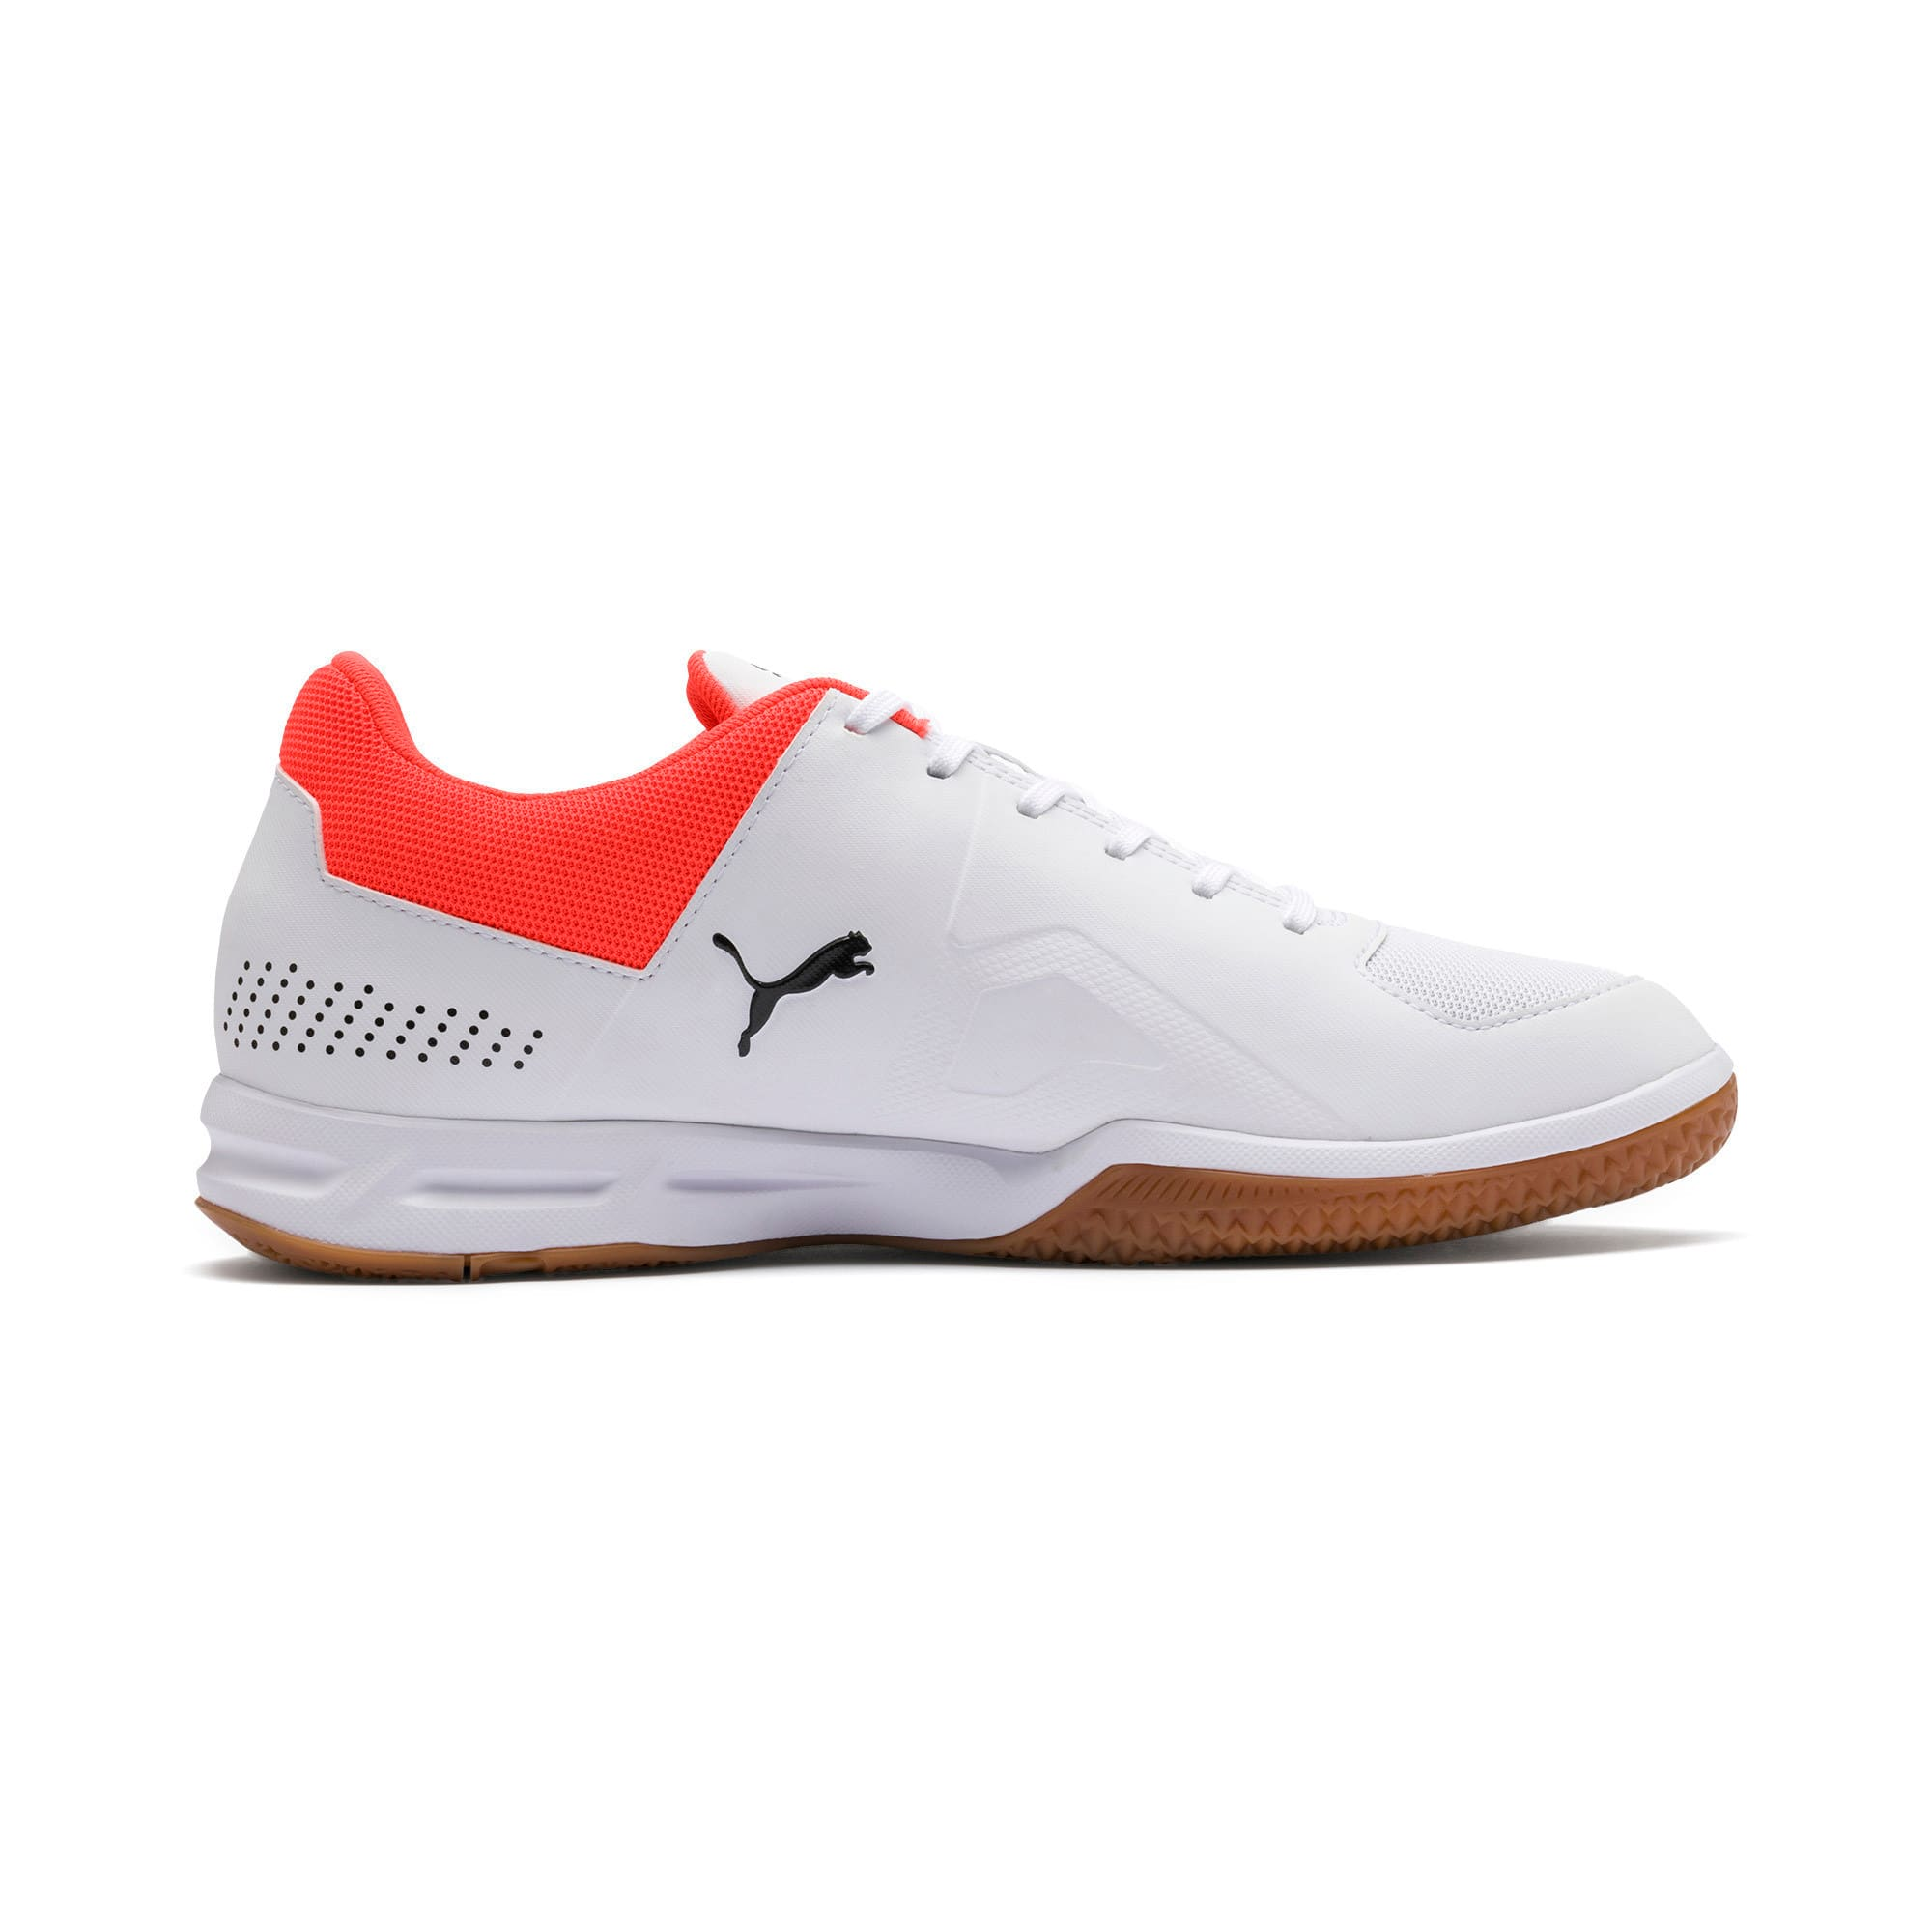 Thumbnail 6 of Auriz Indoor Sport Men's Trainers, White-Black-Nrgy Red-Gum, medium